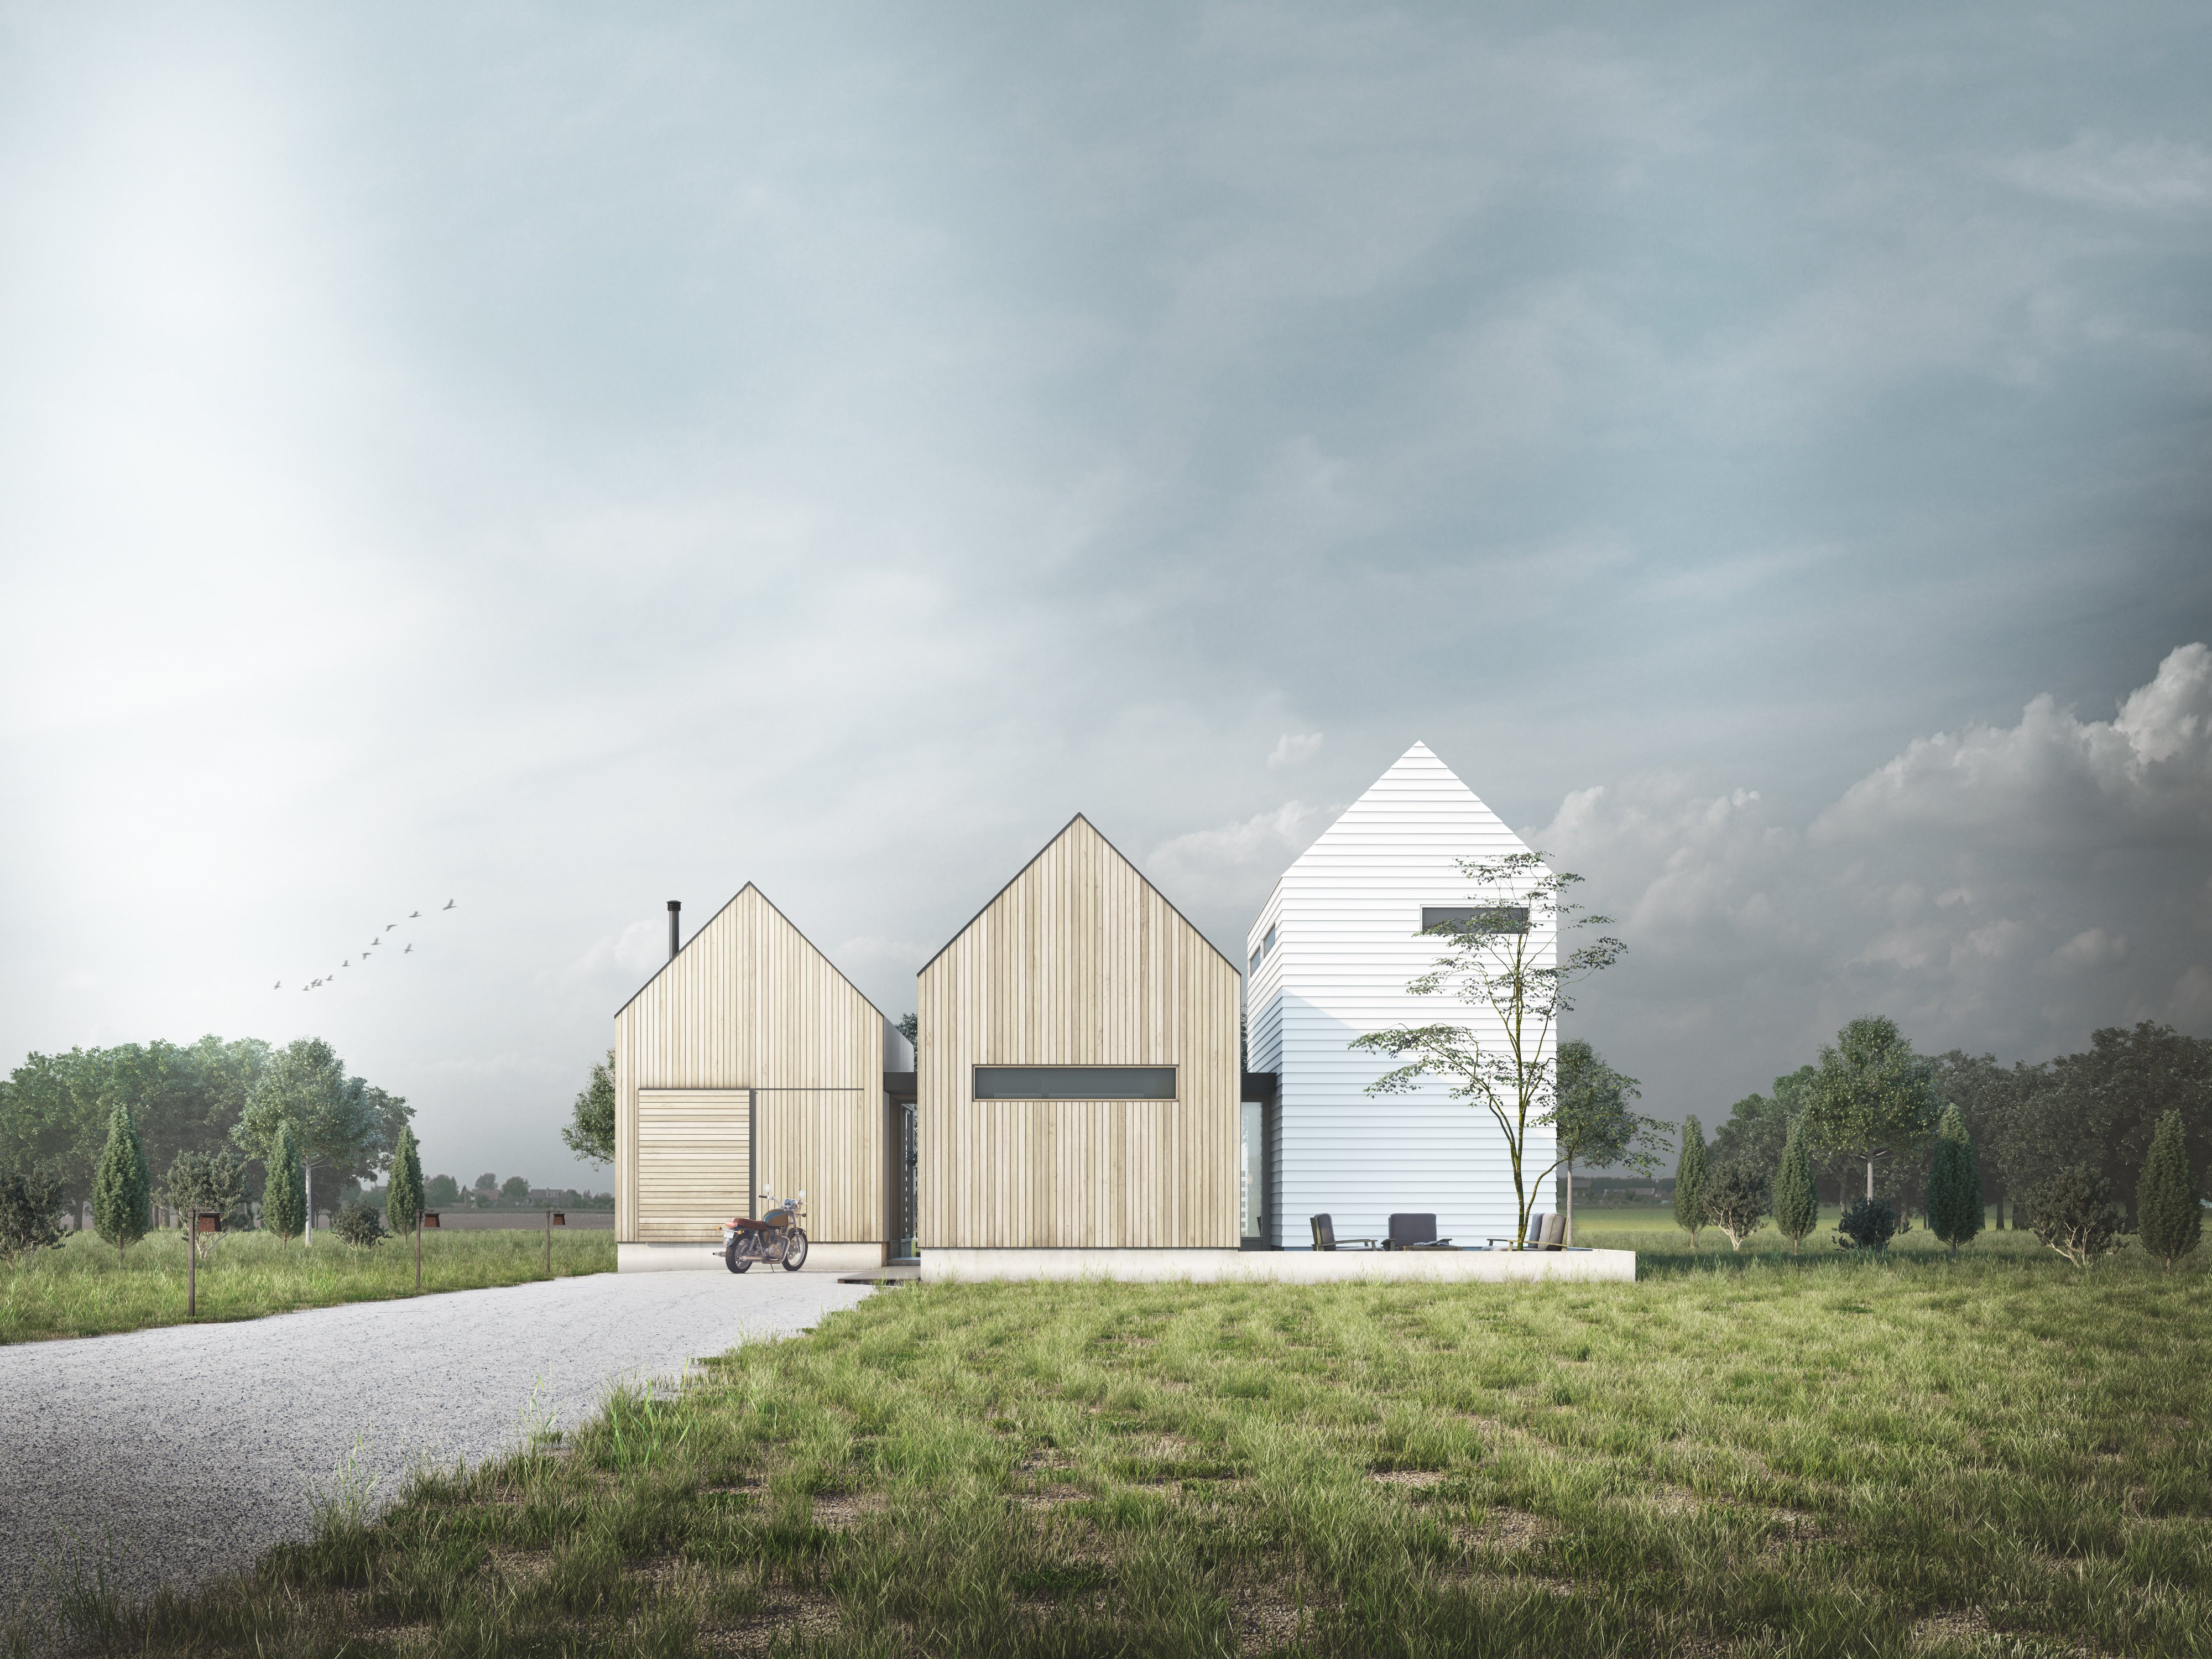 3D_Architectural_Visualization_cottages_USA_01_evermotion.jpg